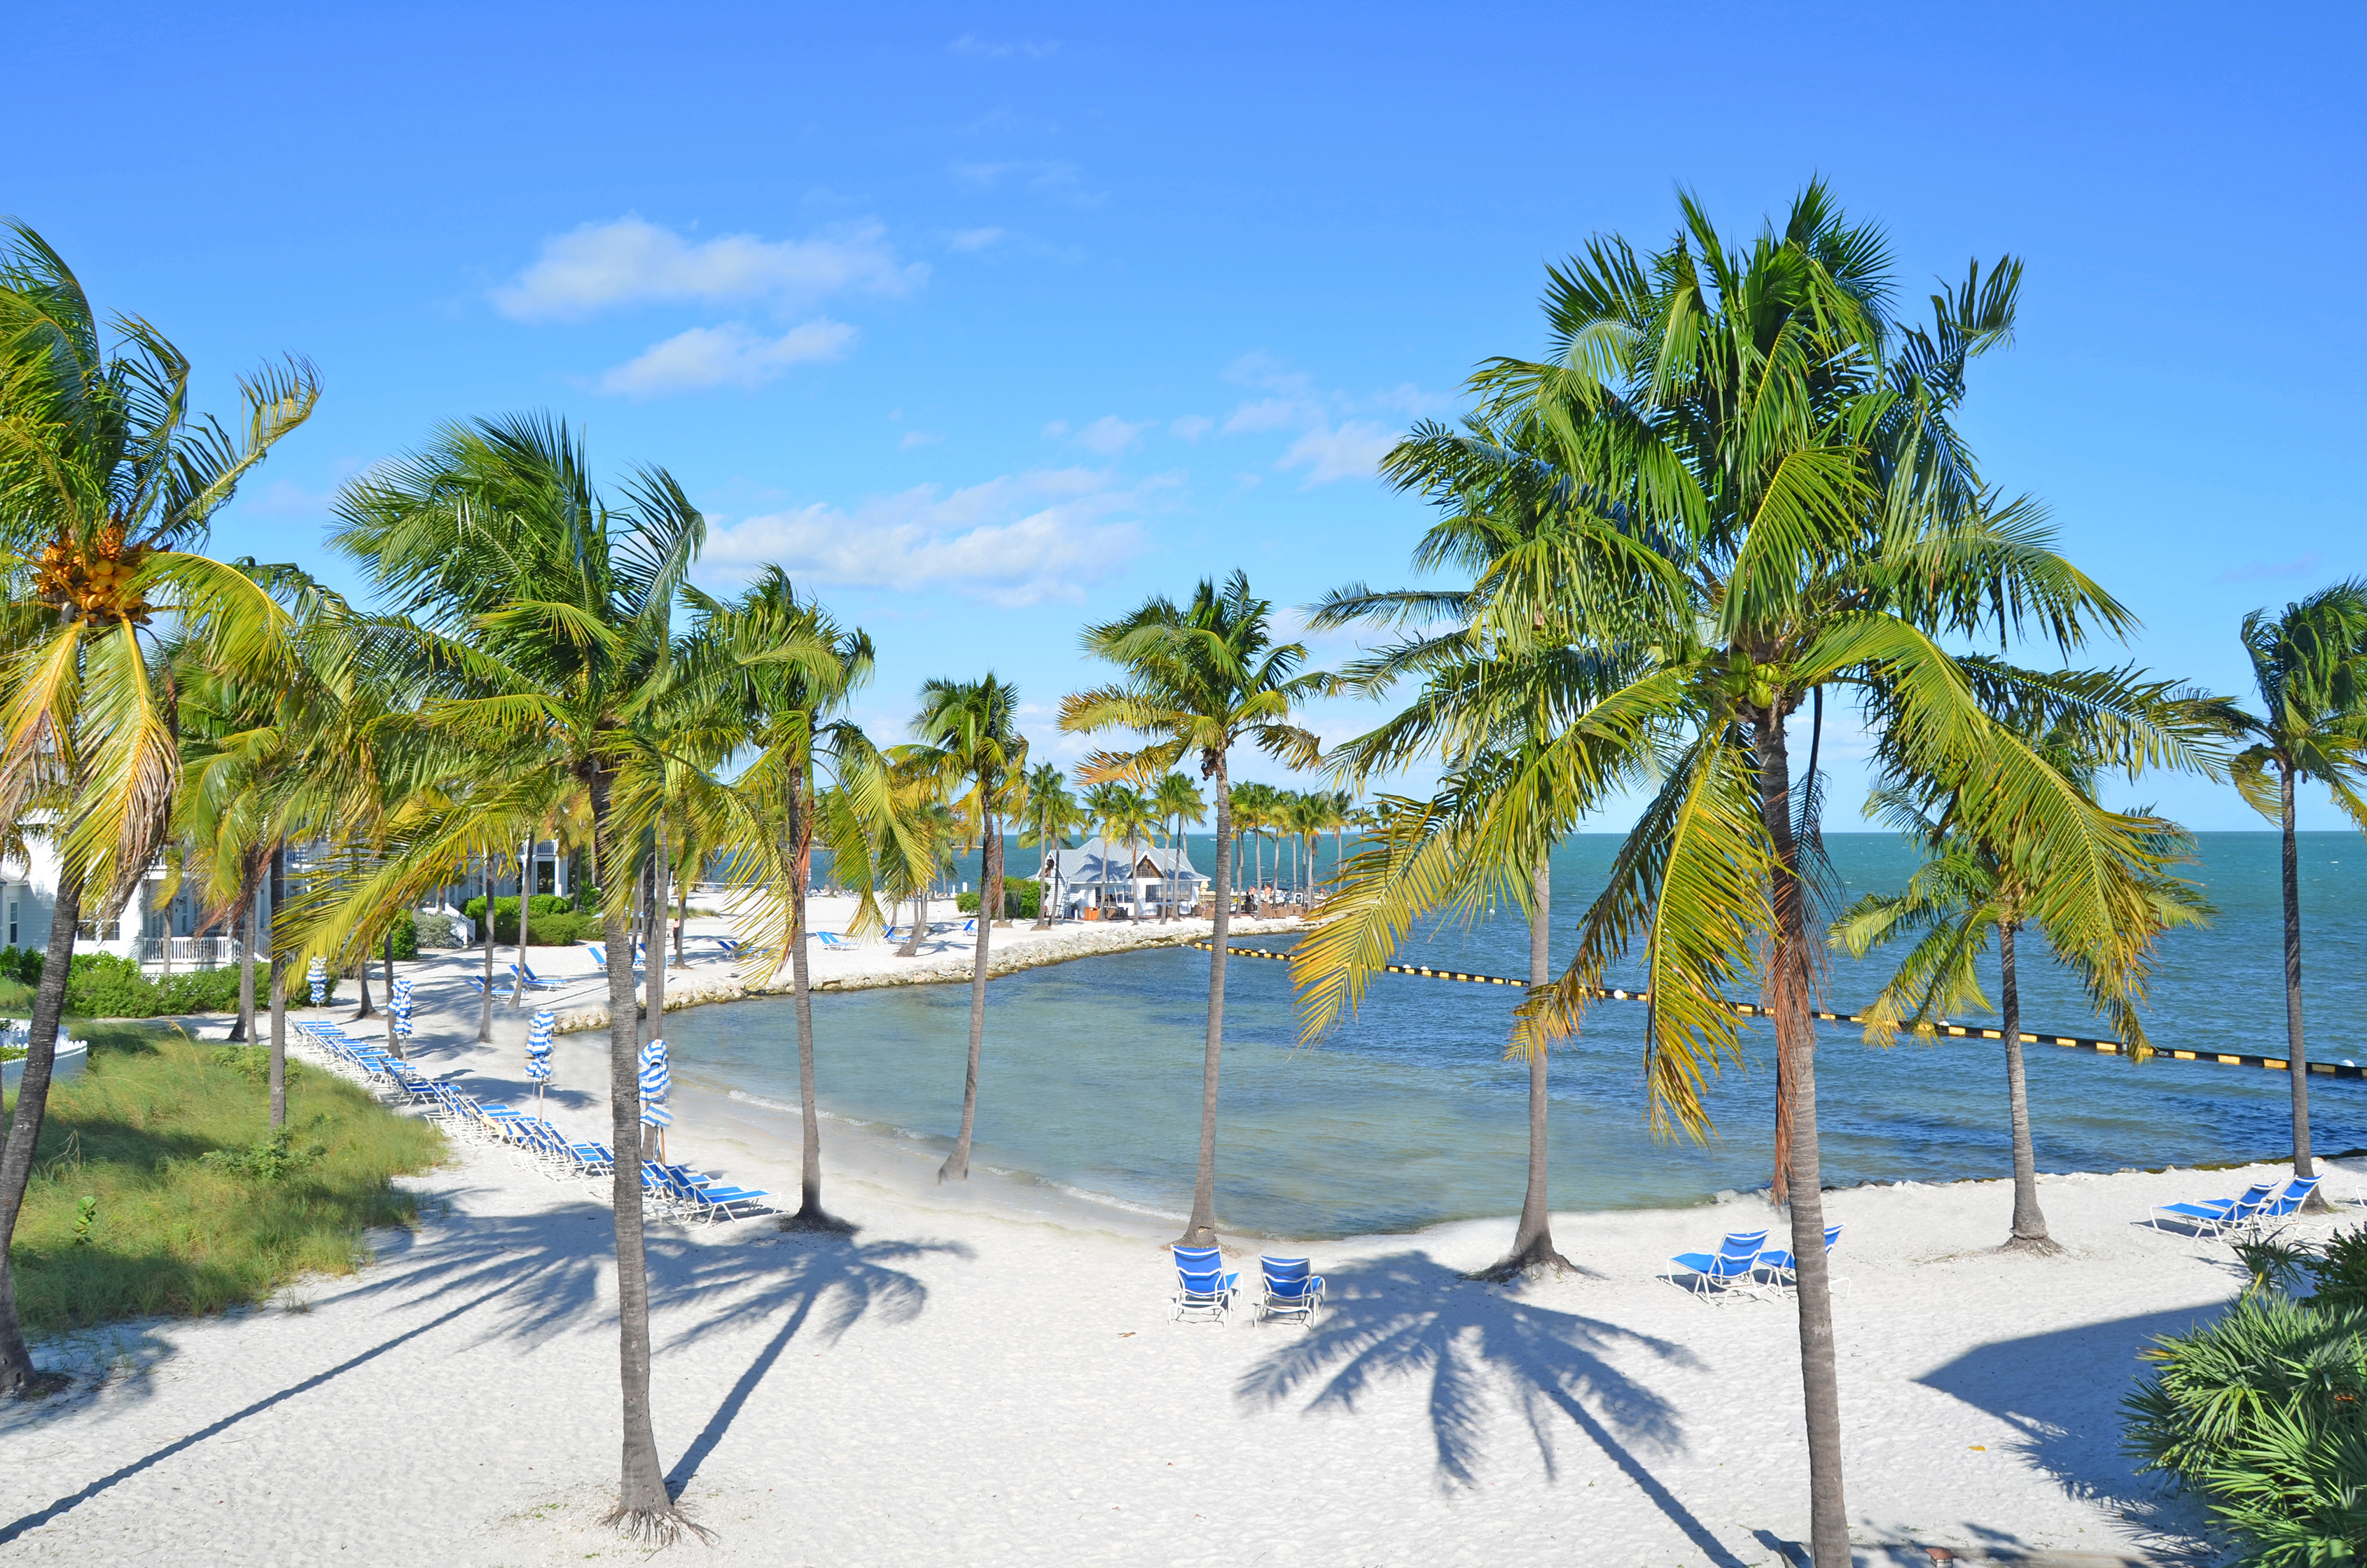 Luxury Florida Keys Resorts Gt Tranquility Bay Beach Resort